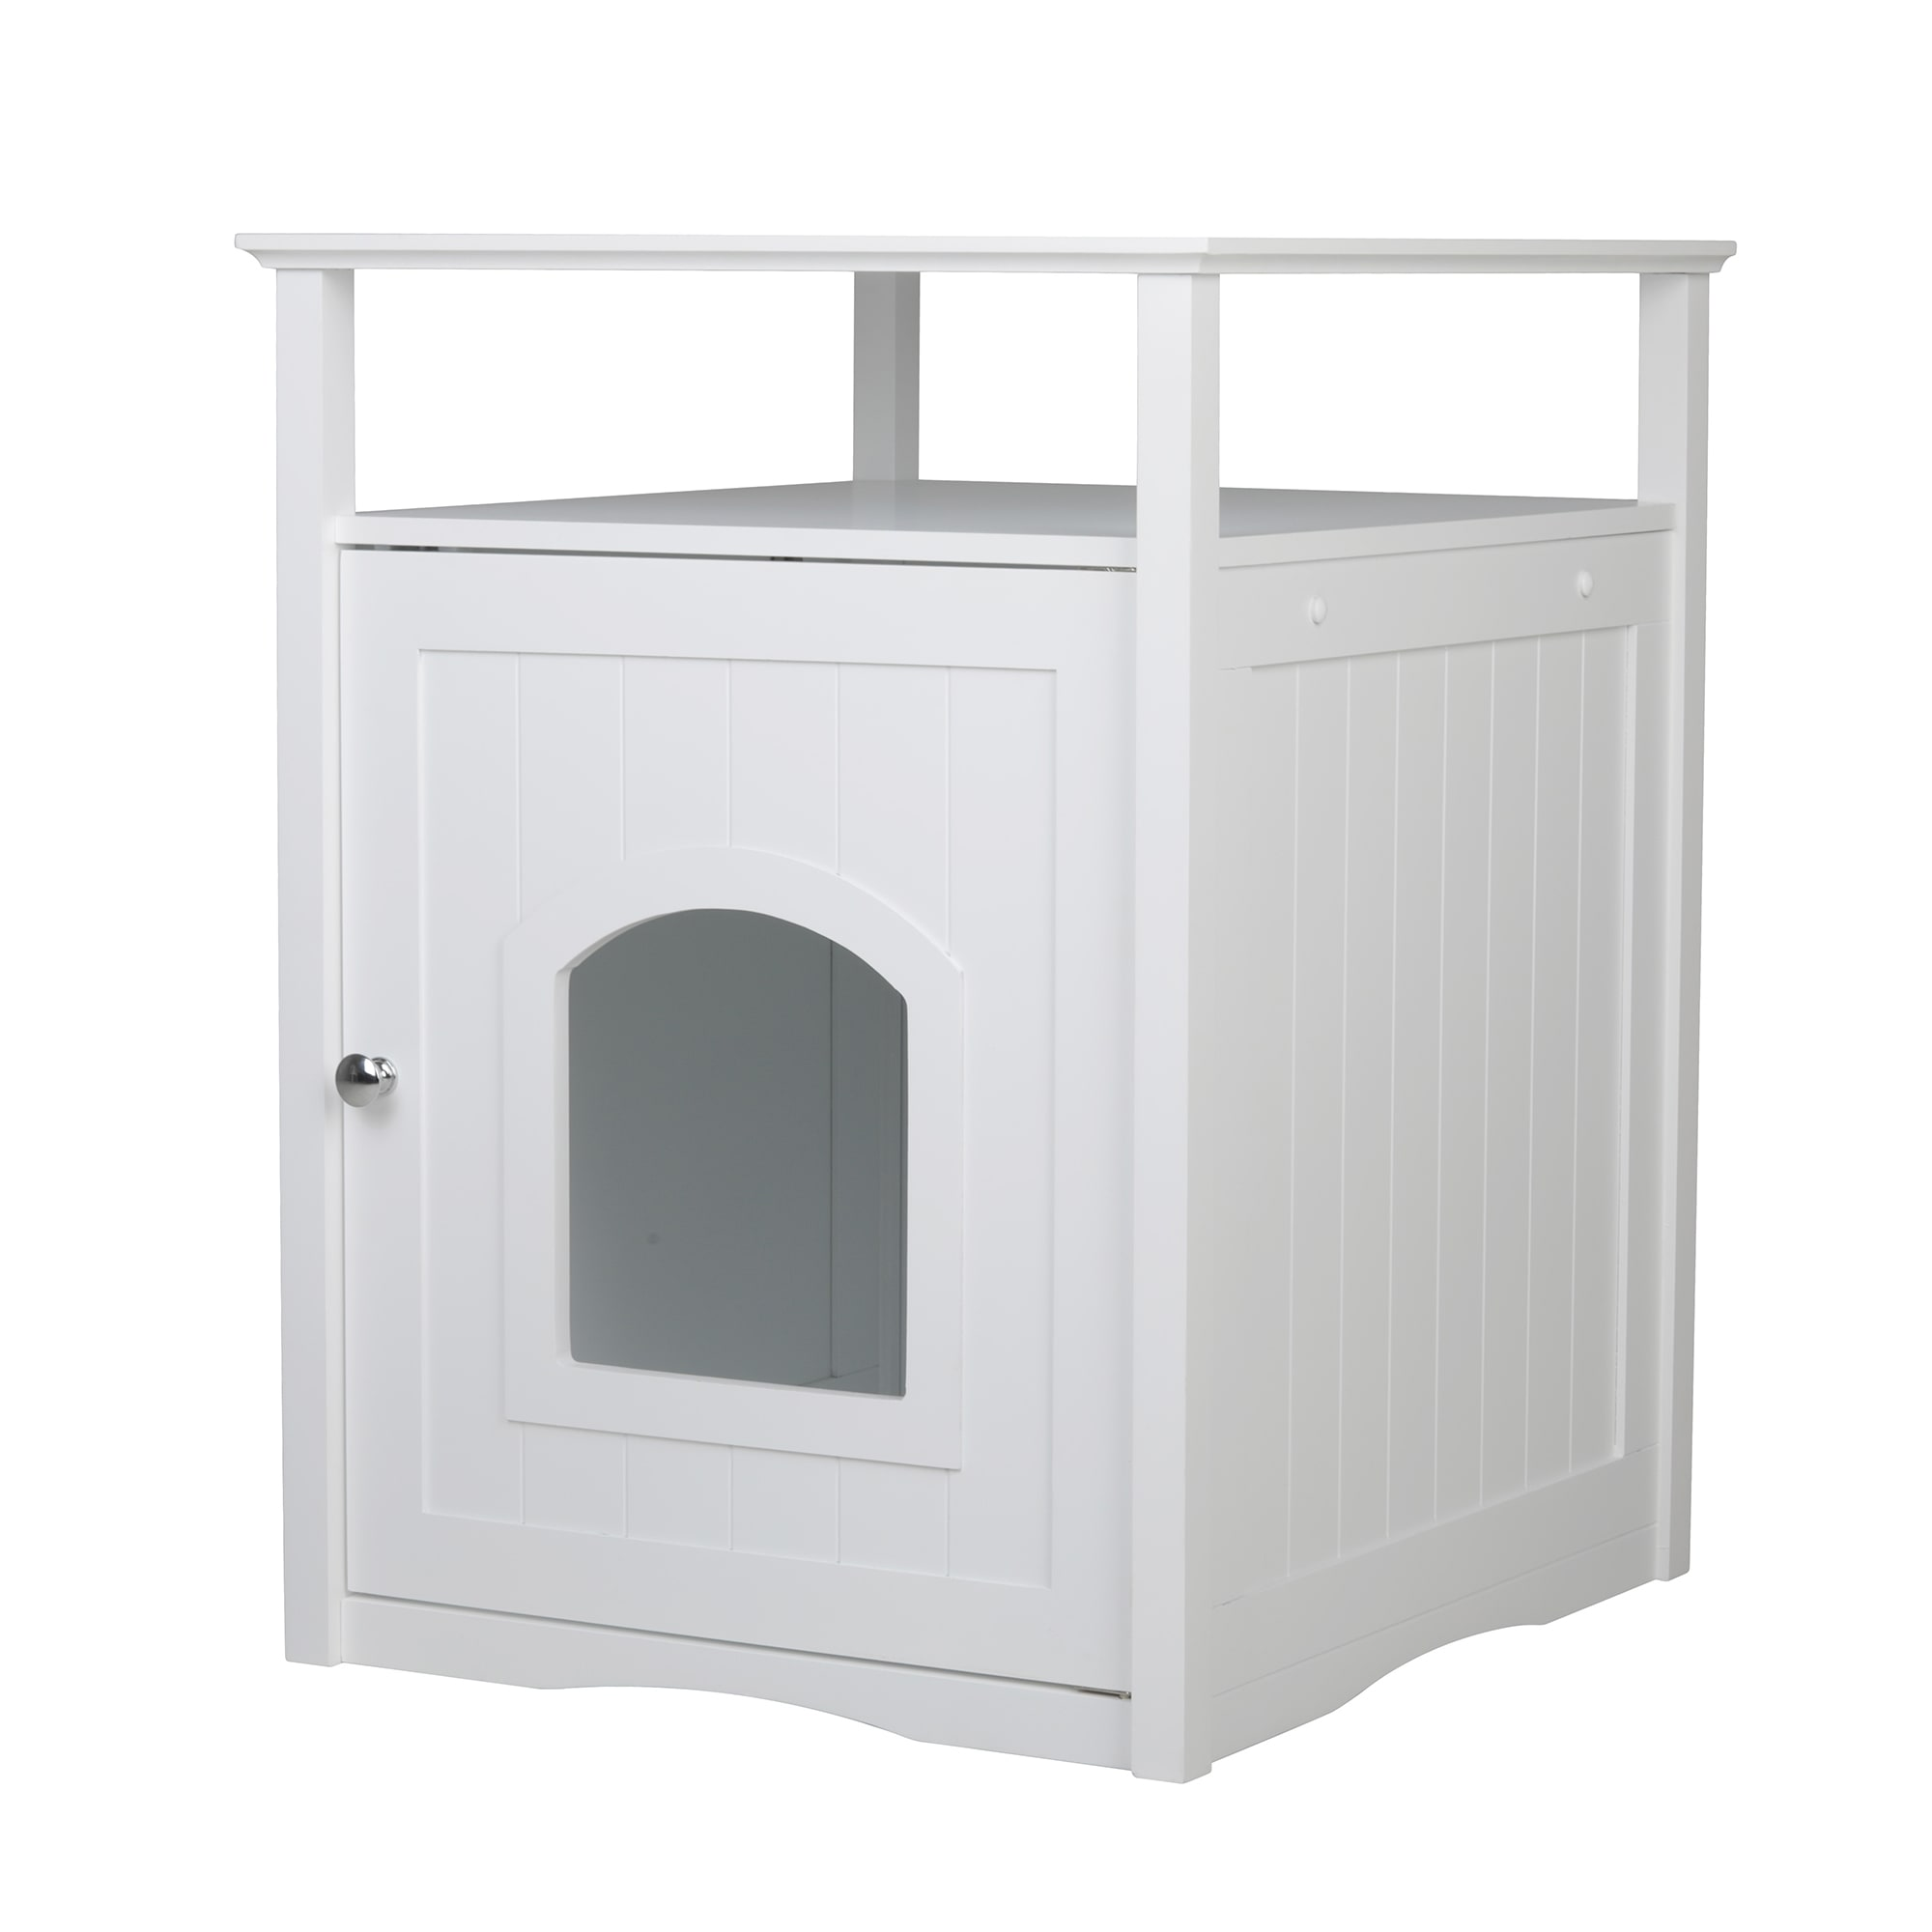 Zoovilla Cat Washroom Night Stand & Pet House in White